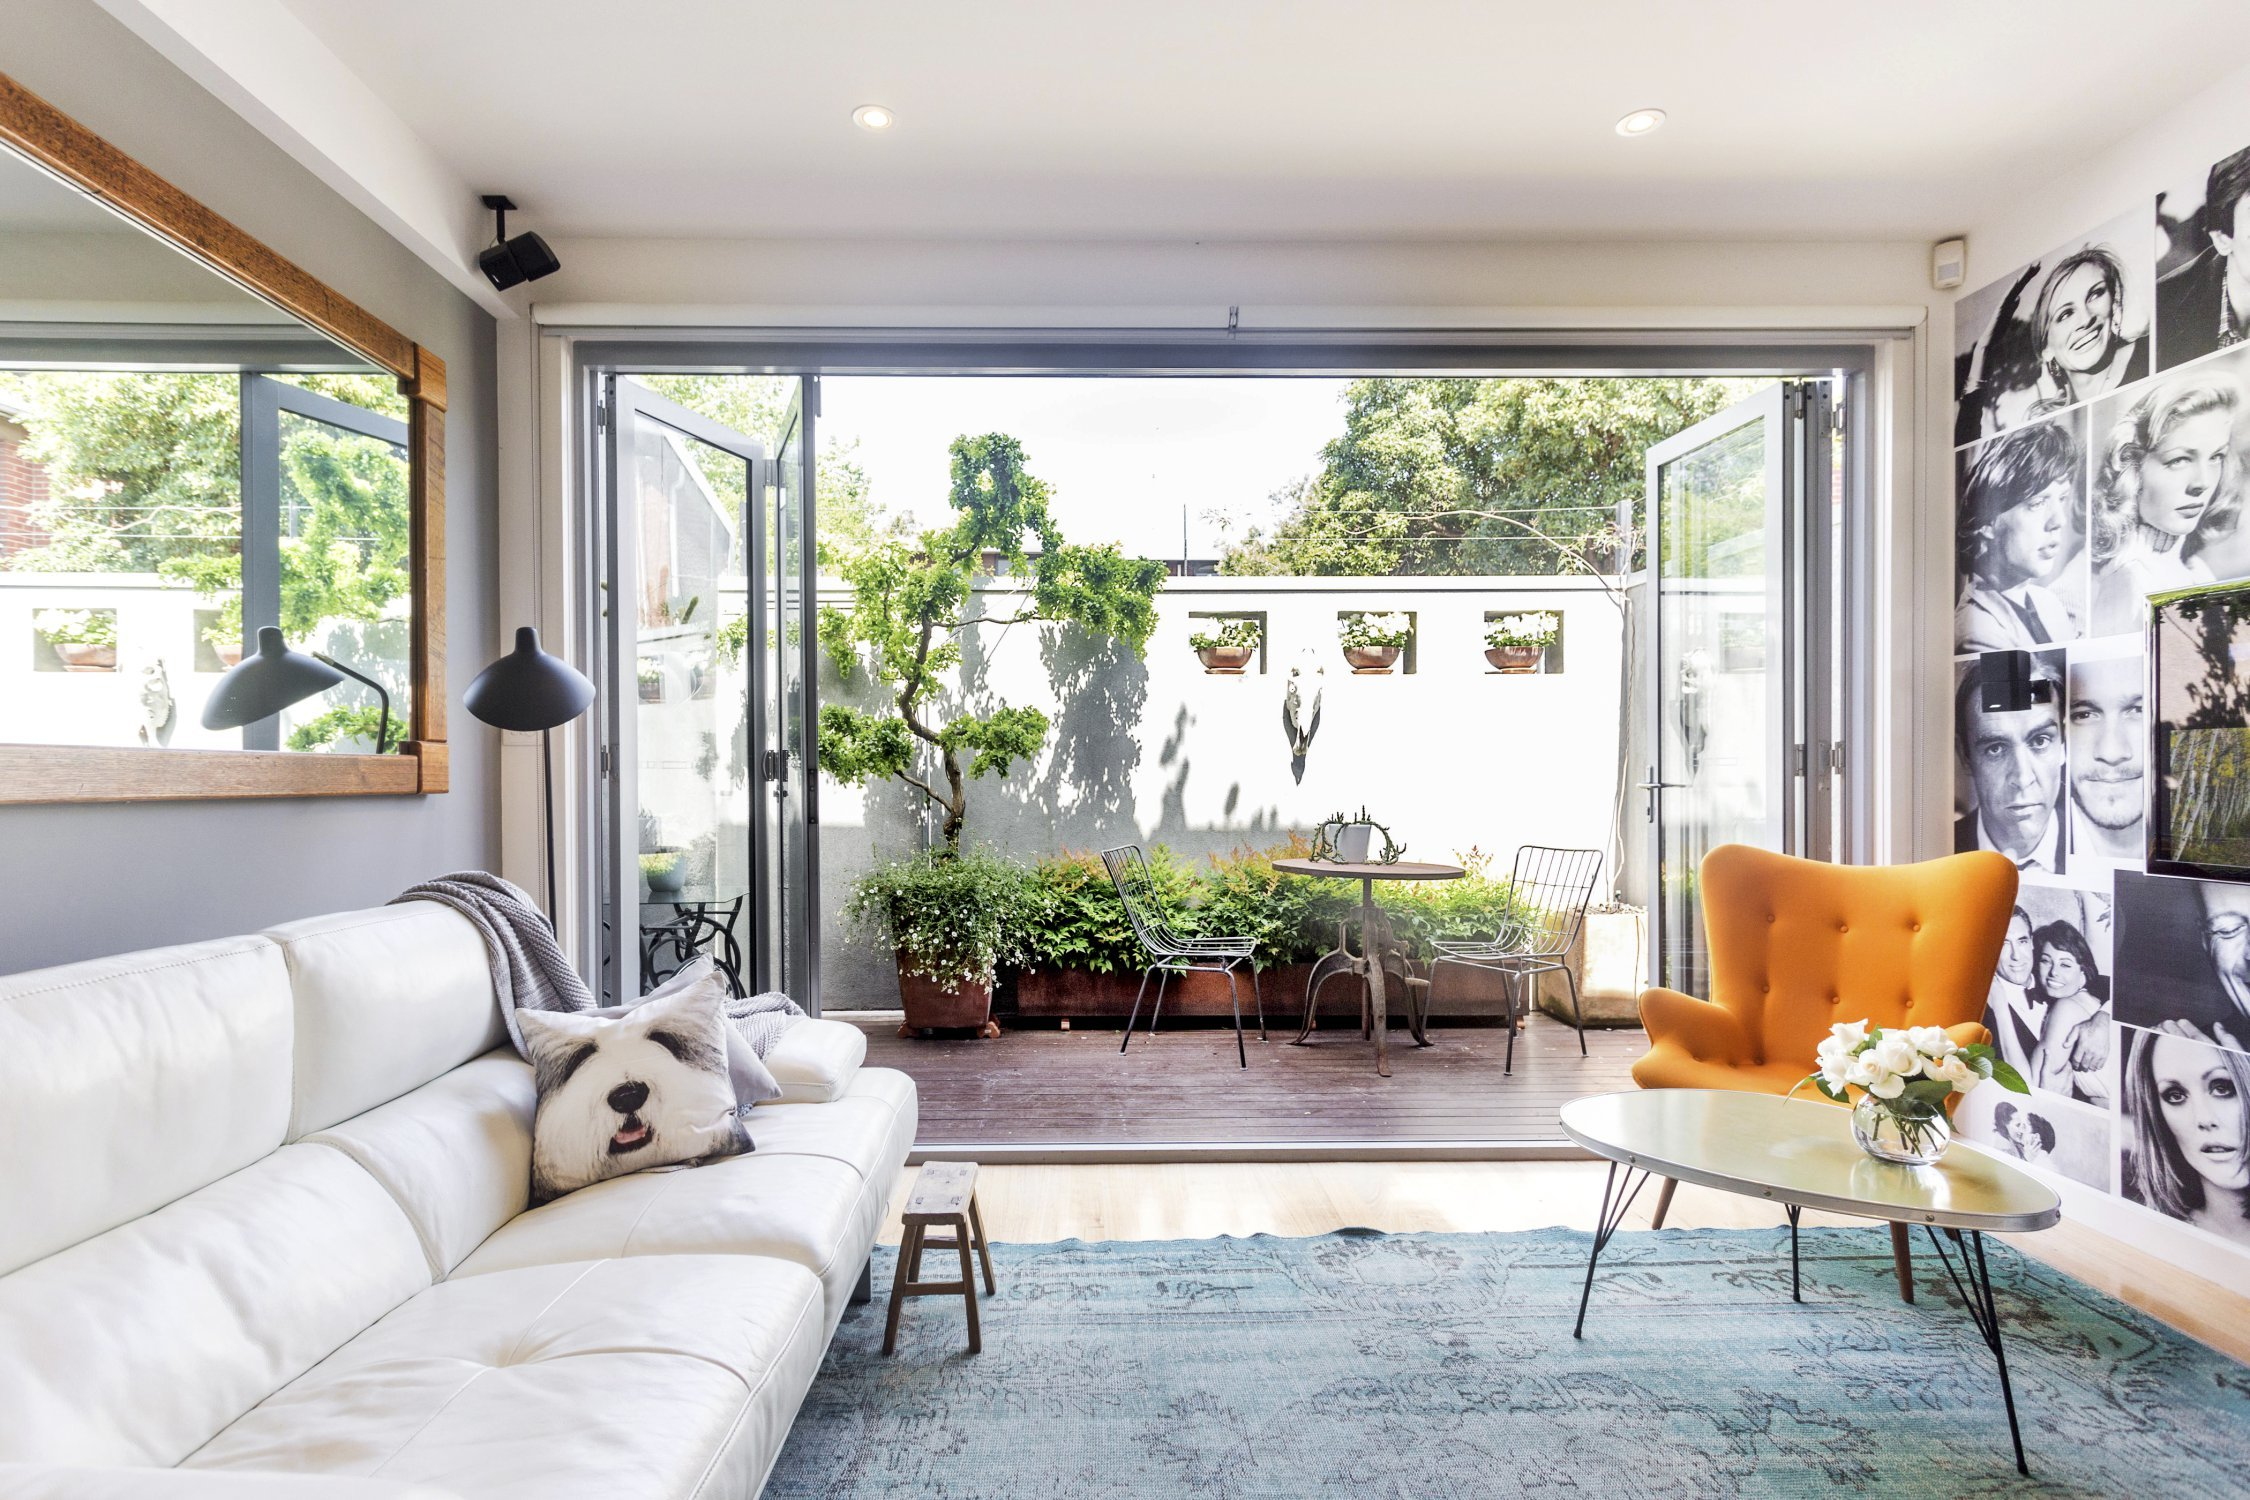 Renovated Victorian terrace